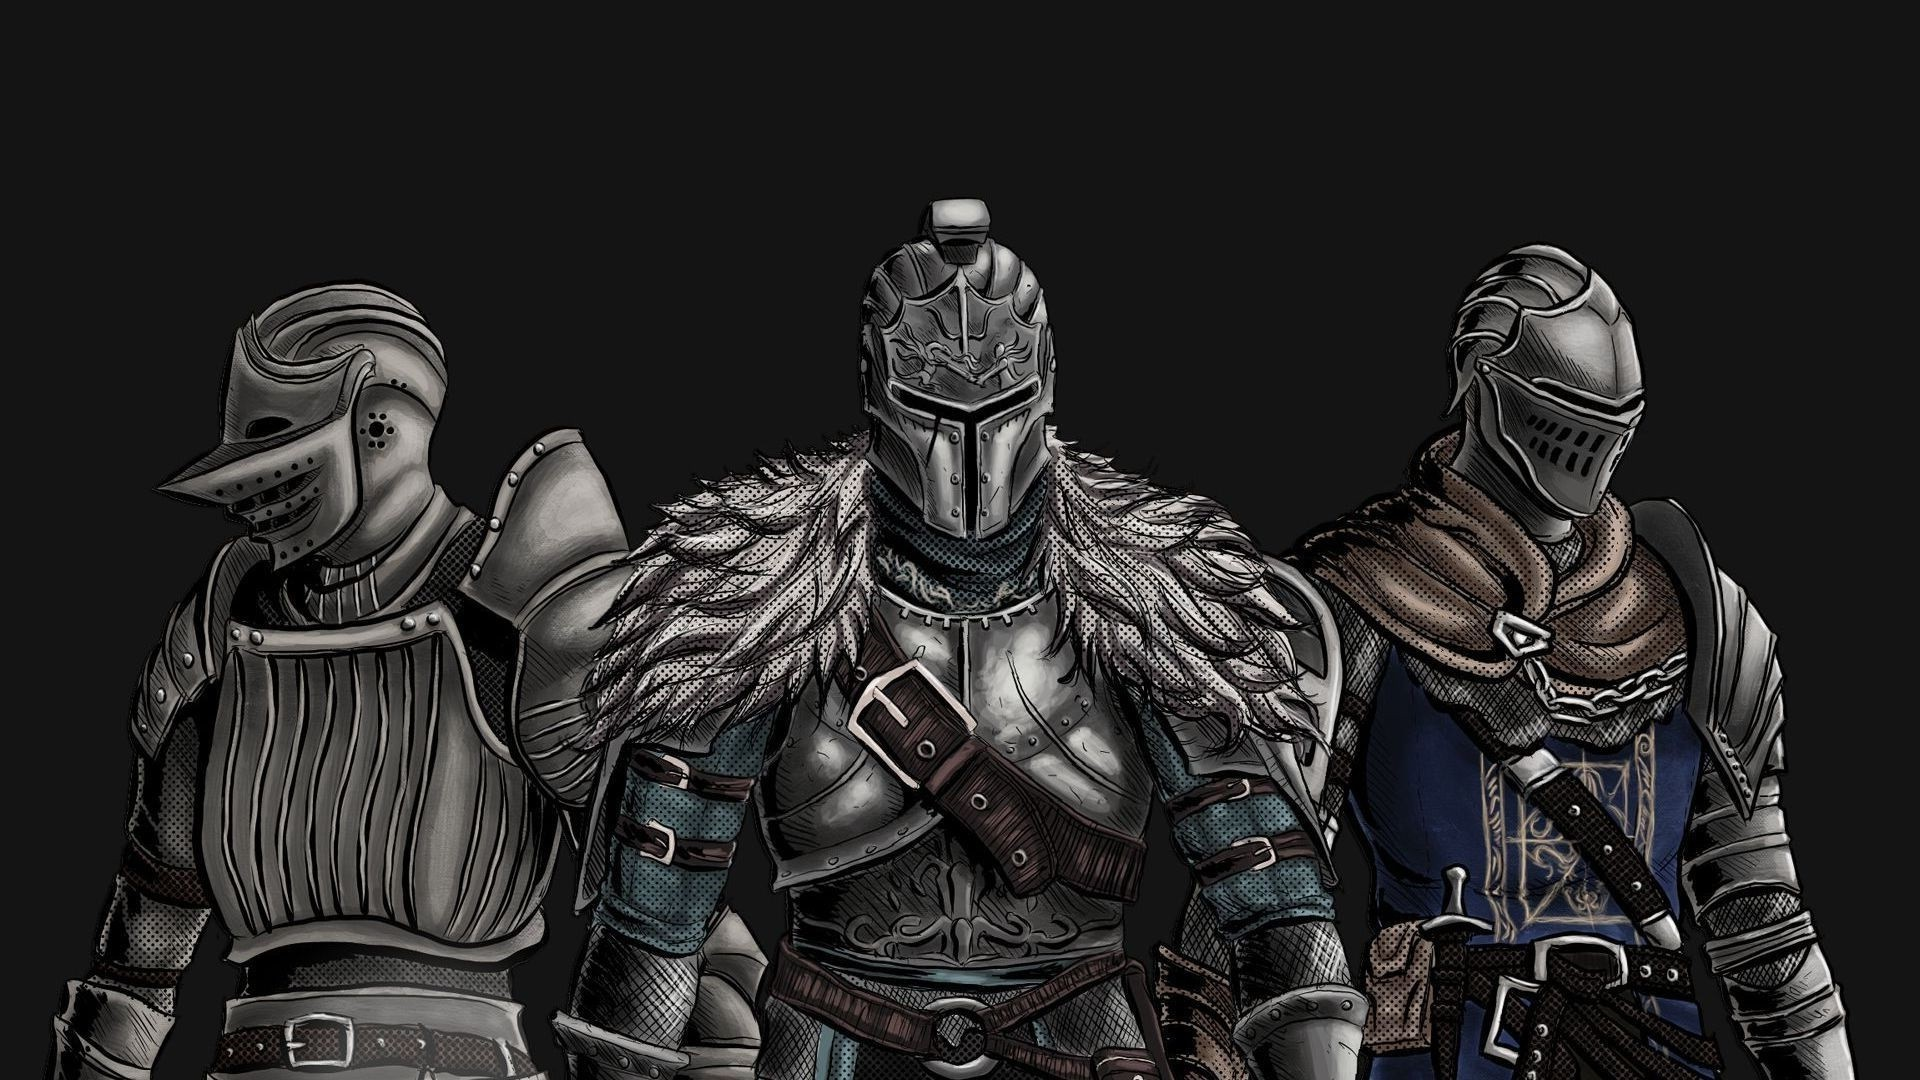 Res: 1920x1080, Demon's Souls HD Wallpapers 14 - 1920 X 1080